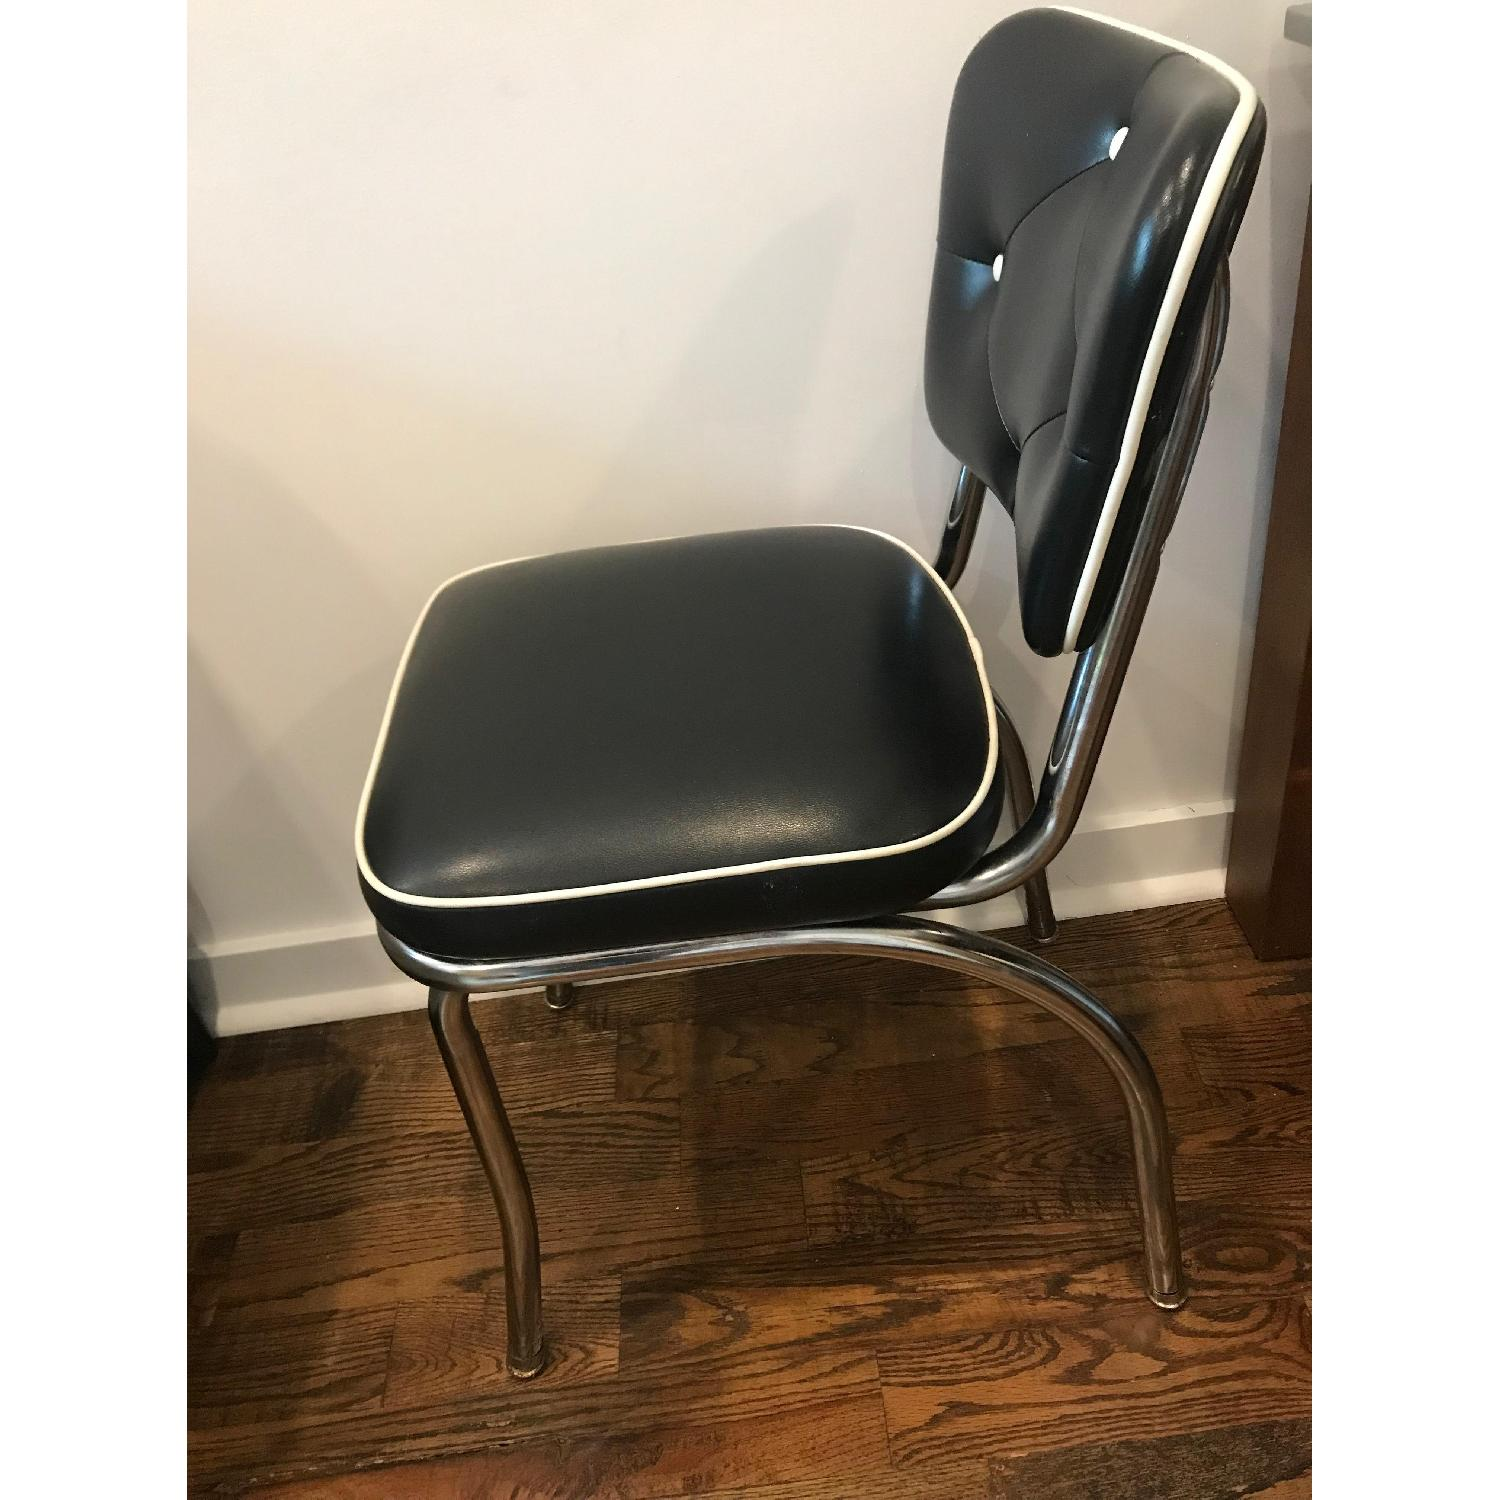 Richardson Seating Corp Lucy Diner Chairs in Black - image-2